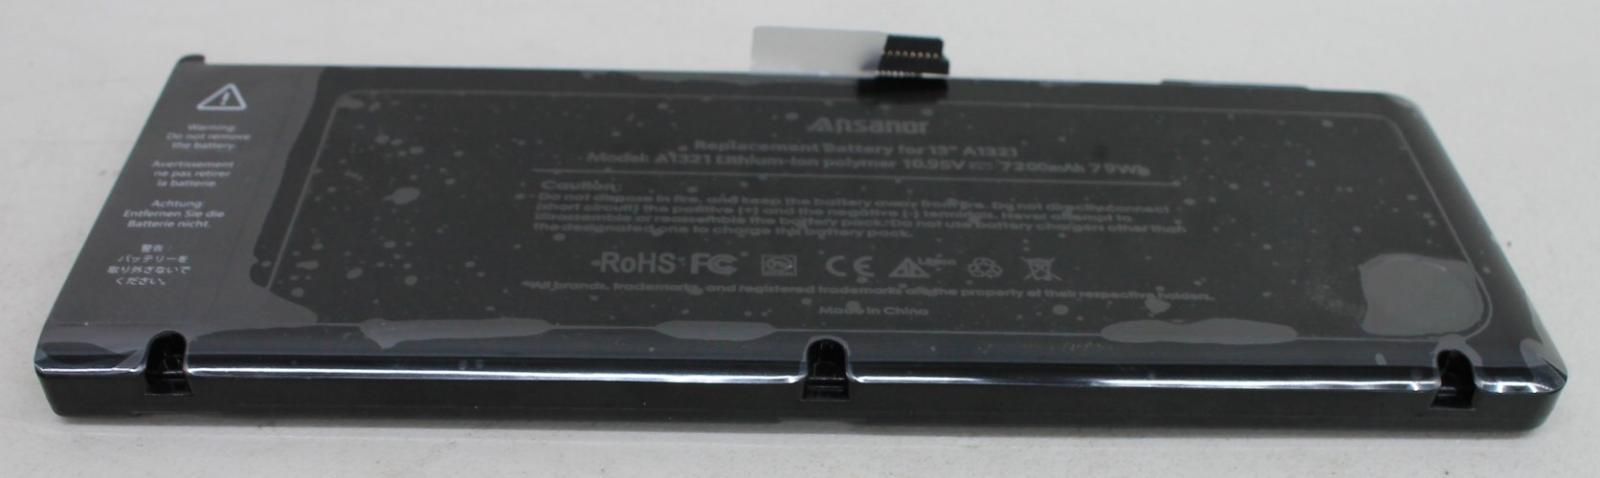 ANSANOR-10-95V-7200mAh-A1321-Type-Battery-For-Mid-2009-2010-MacBook-Pro-15-034-BNIB miniatuur 5